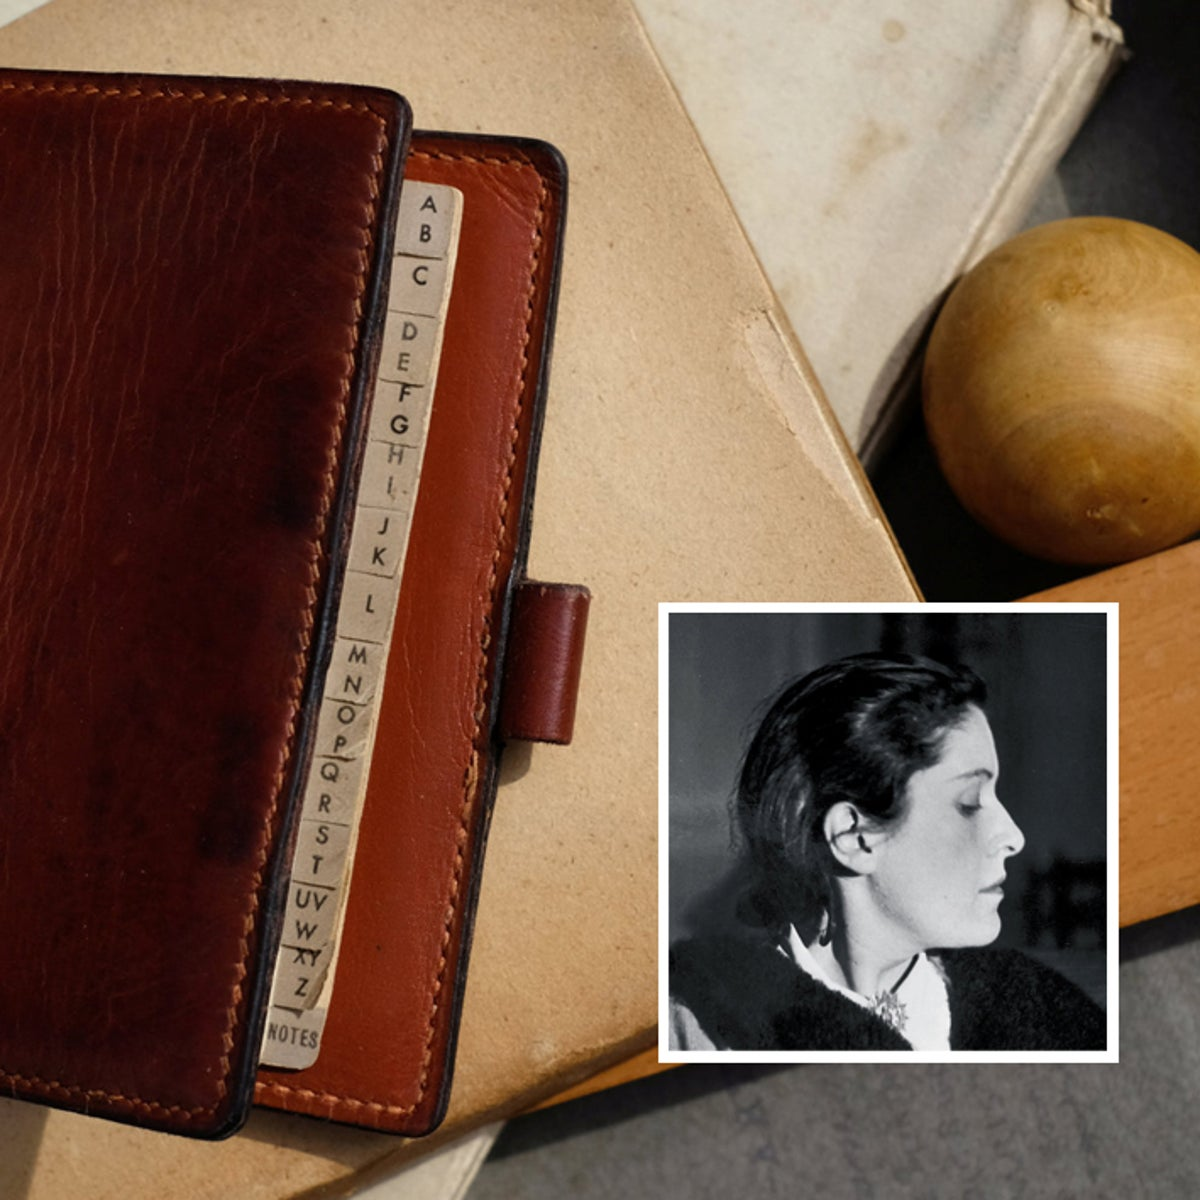 Dora Maar, Pablo Picasso's muse and model, during winter 1935-1936, and her Hermès notebook.